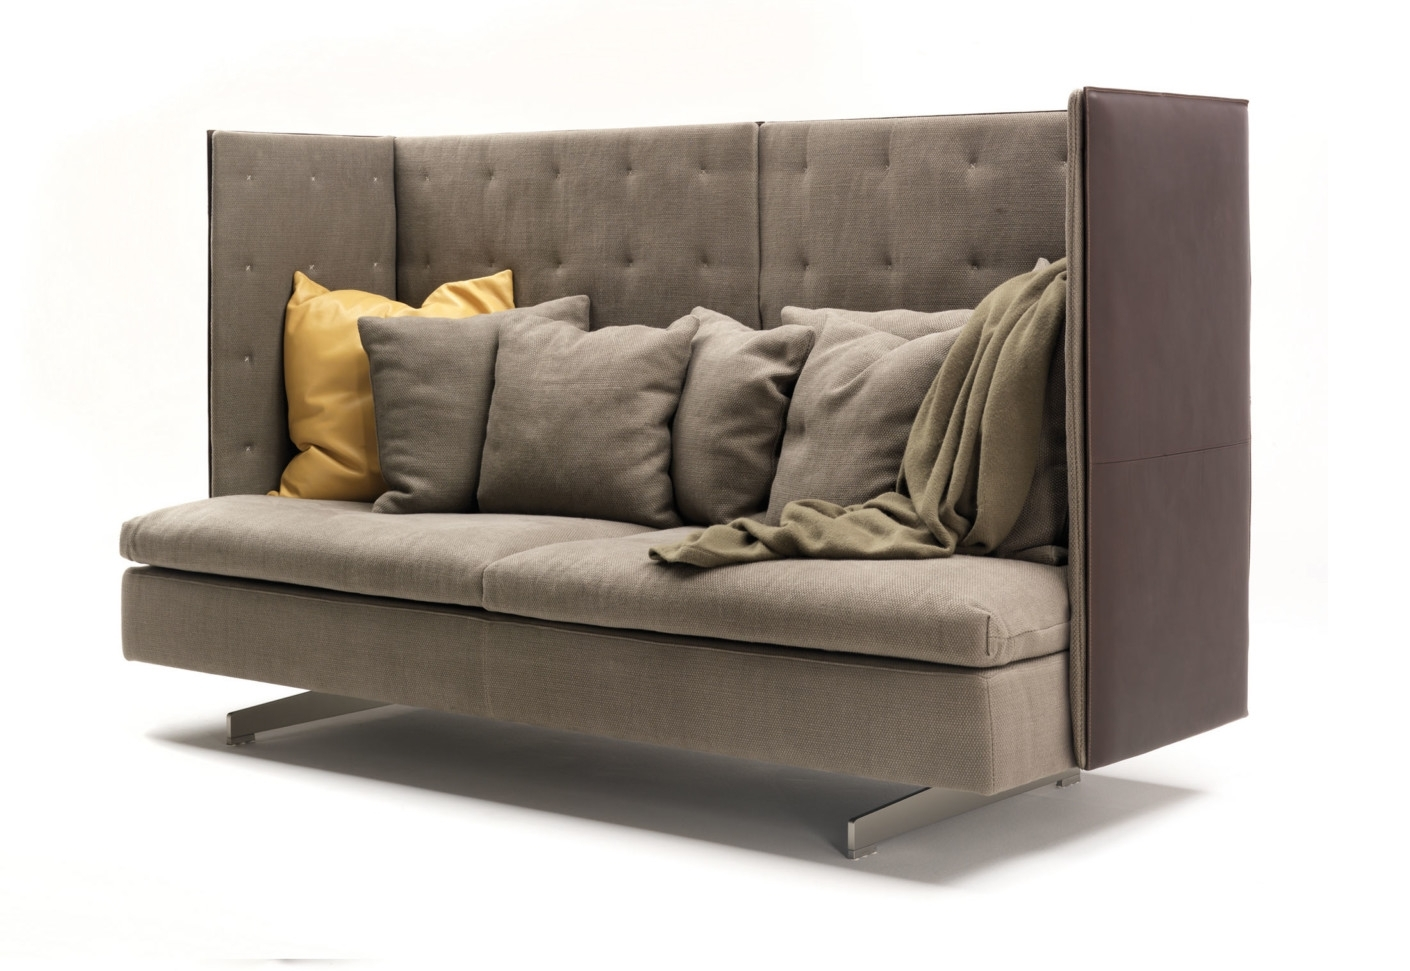 High Back Sectional Sofas – It Is Better To Opt For Leather Or Fabric? Pertaining To High Point Nc Sectional Sofas (Photo 6 of 10)